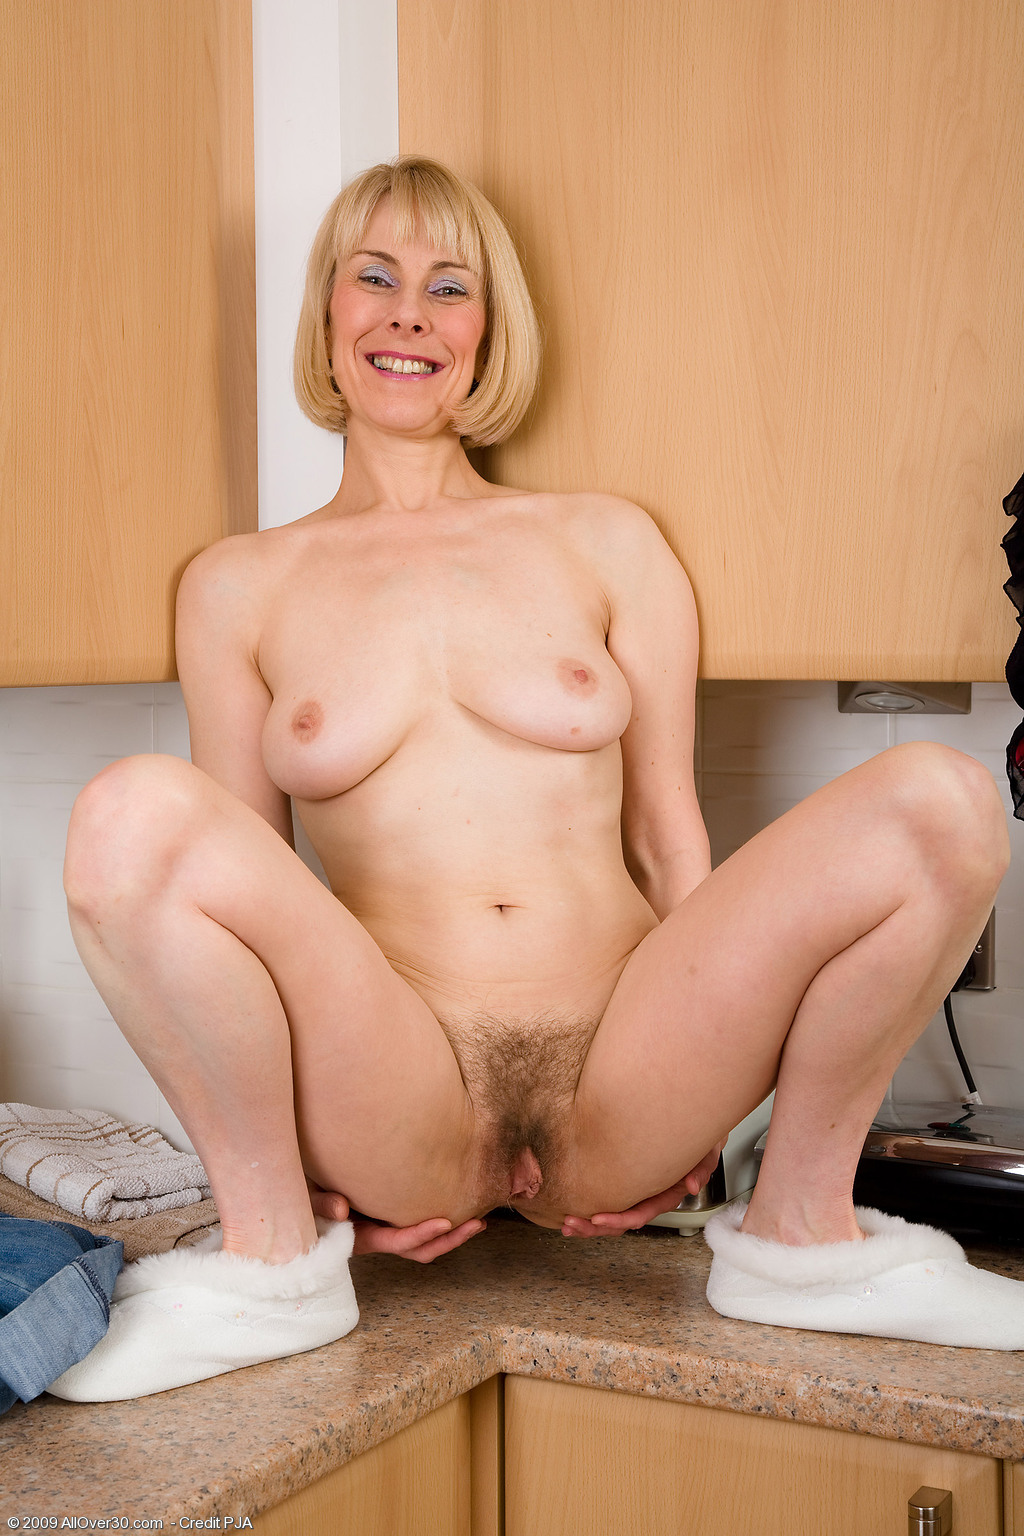 maneesha koerala showing brest pussy and pucking